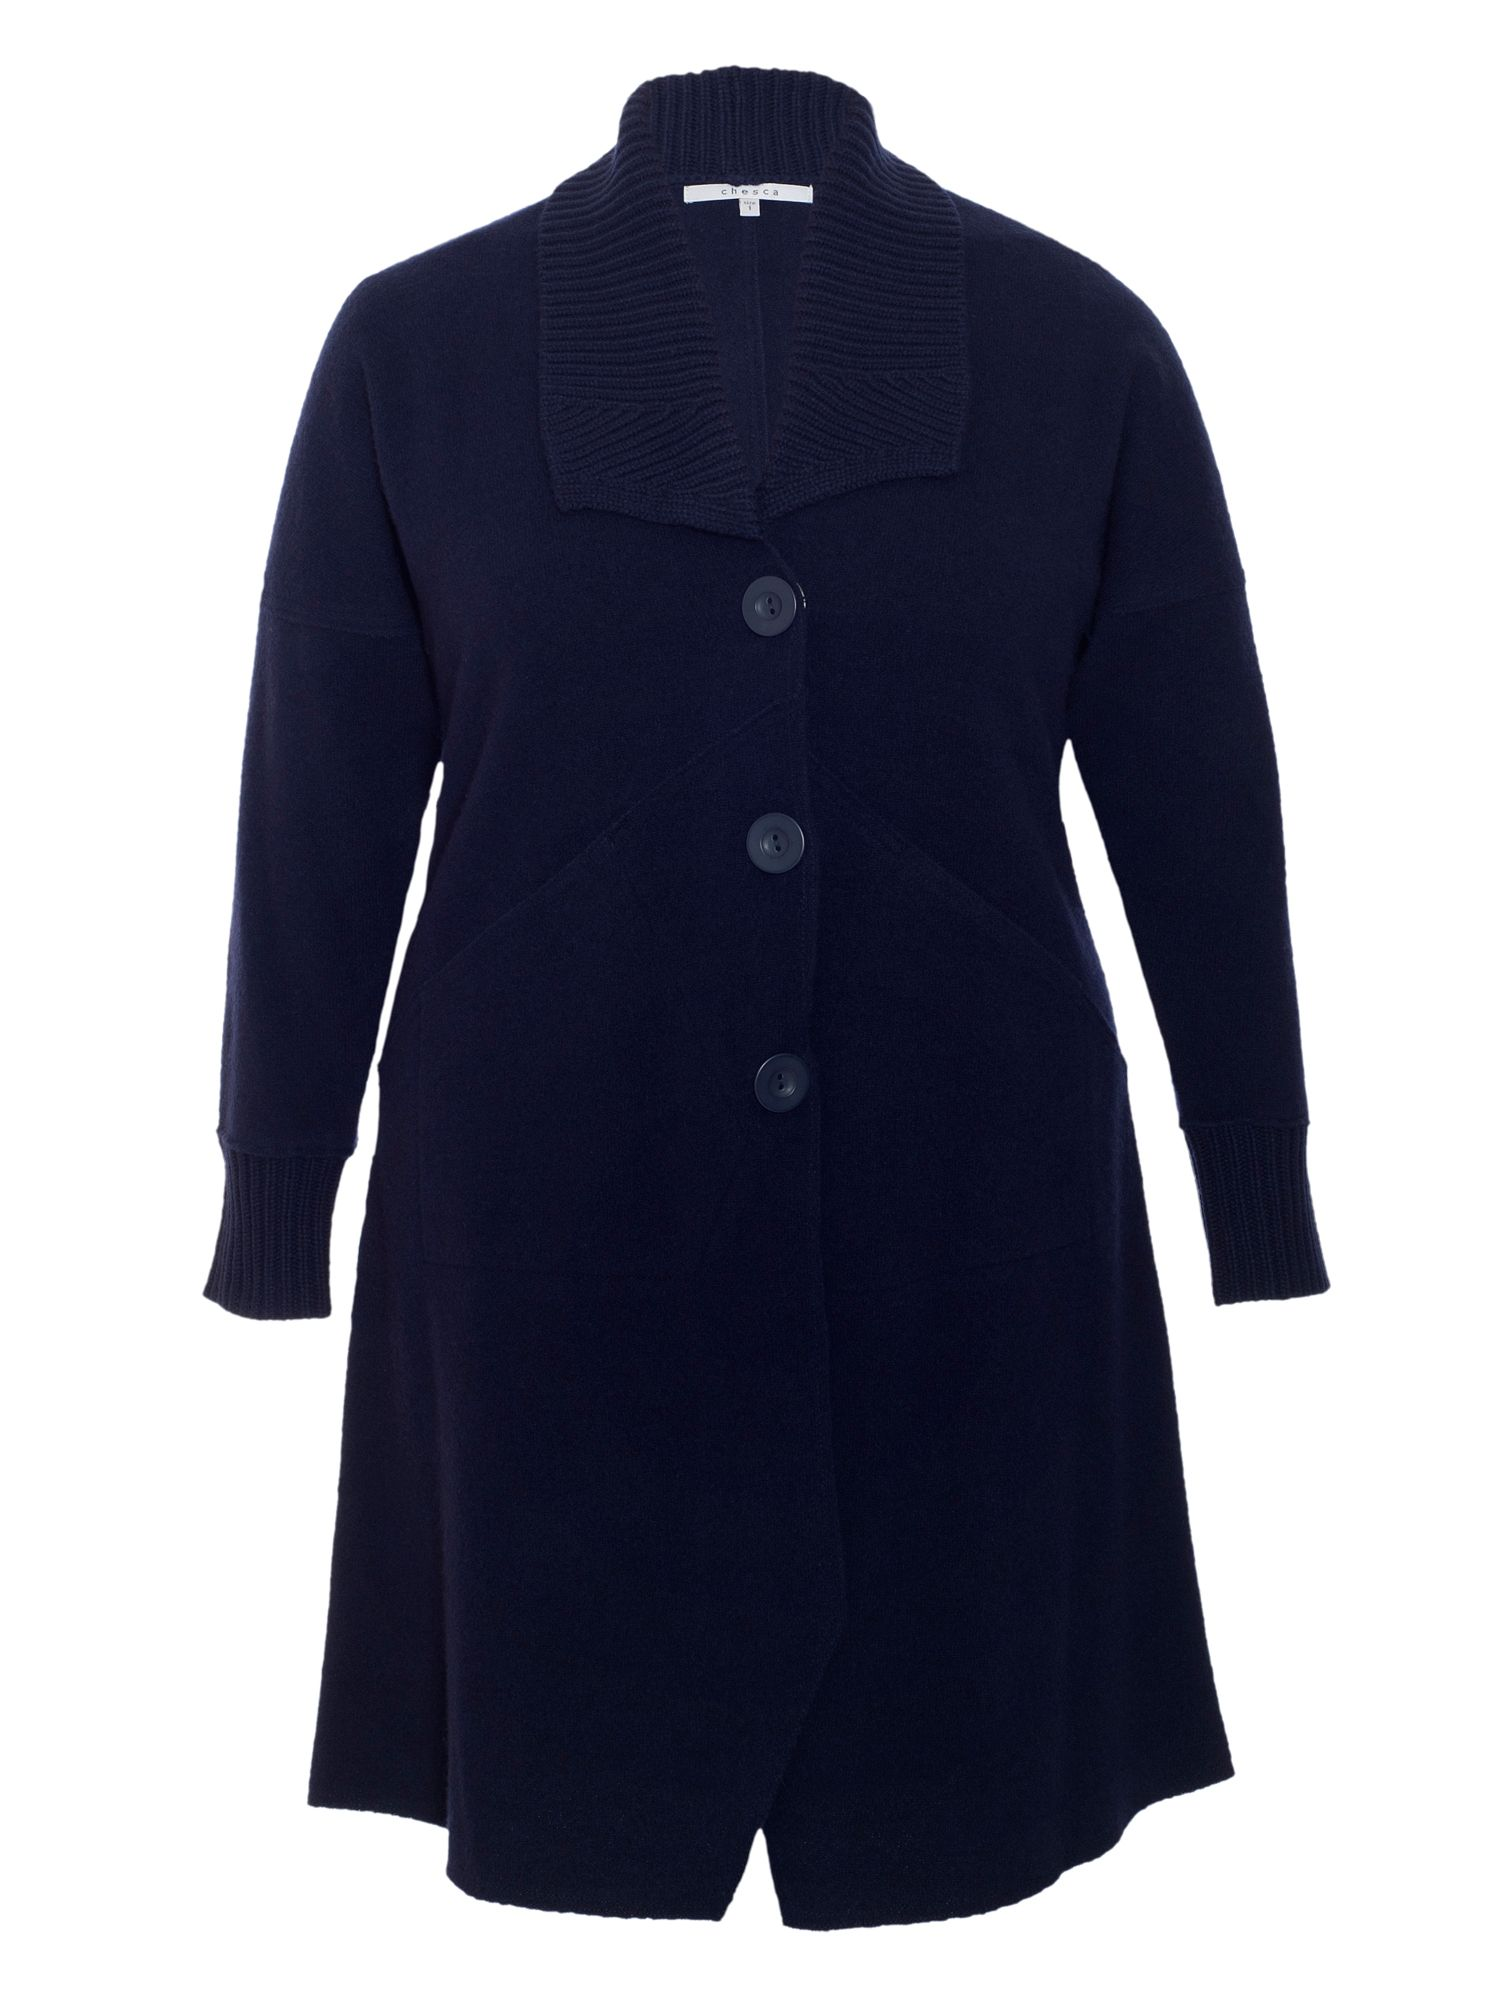 Ribbed Collar Boiled Wool Coat